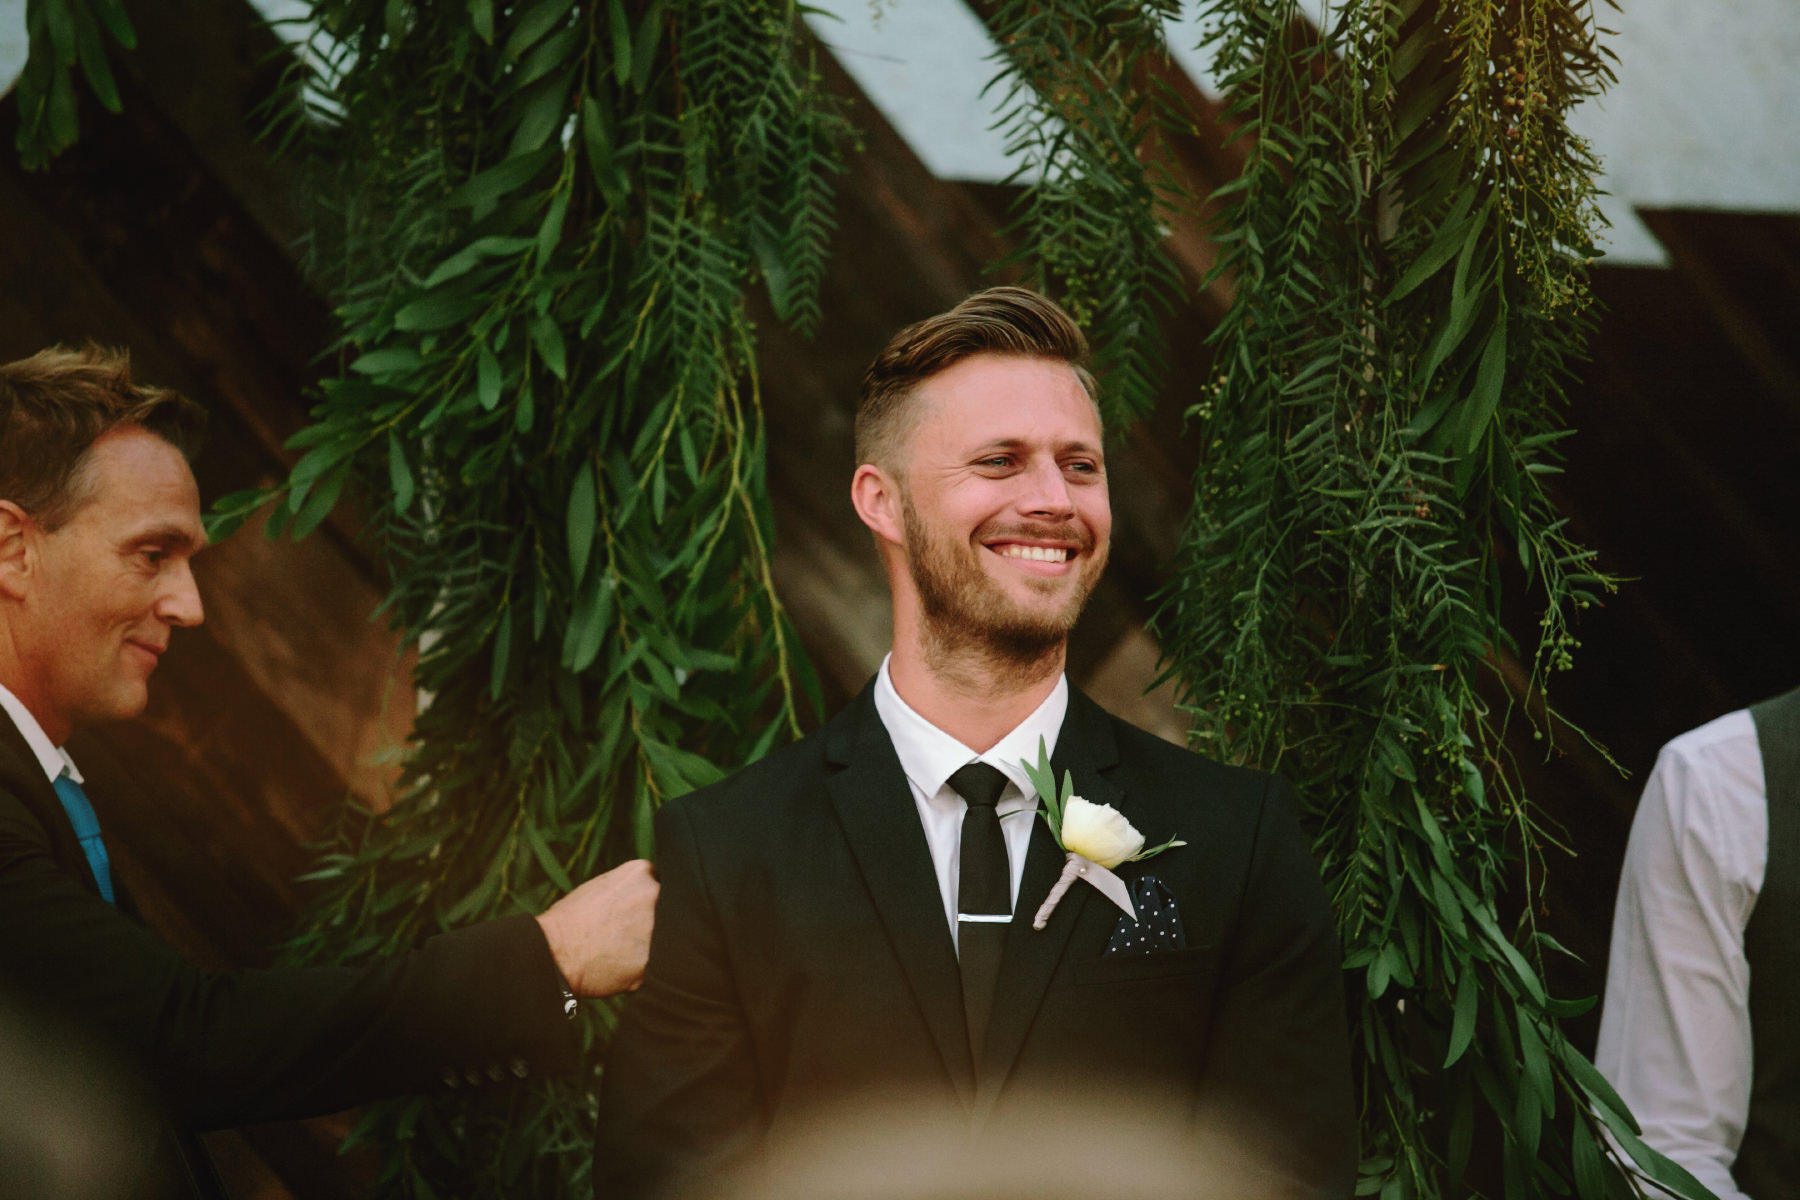 Teary eyed groom see his bride coming down the aisle at Booze Brothers wedding